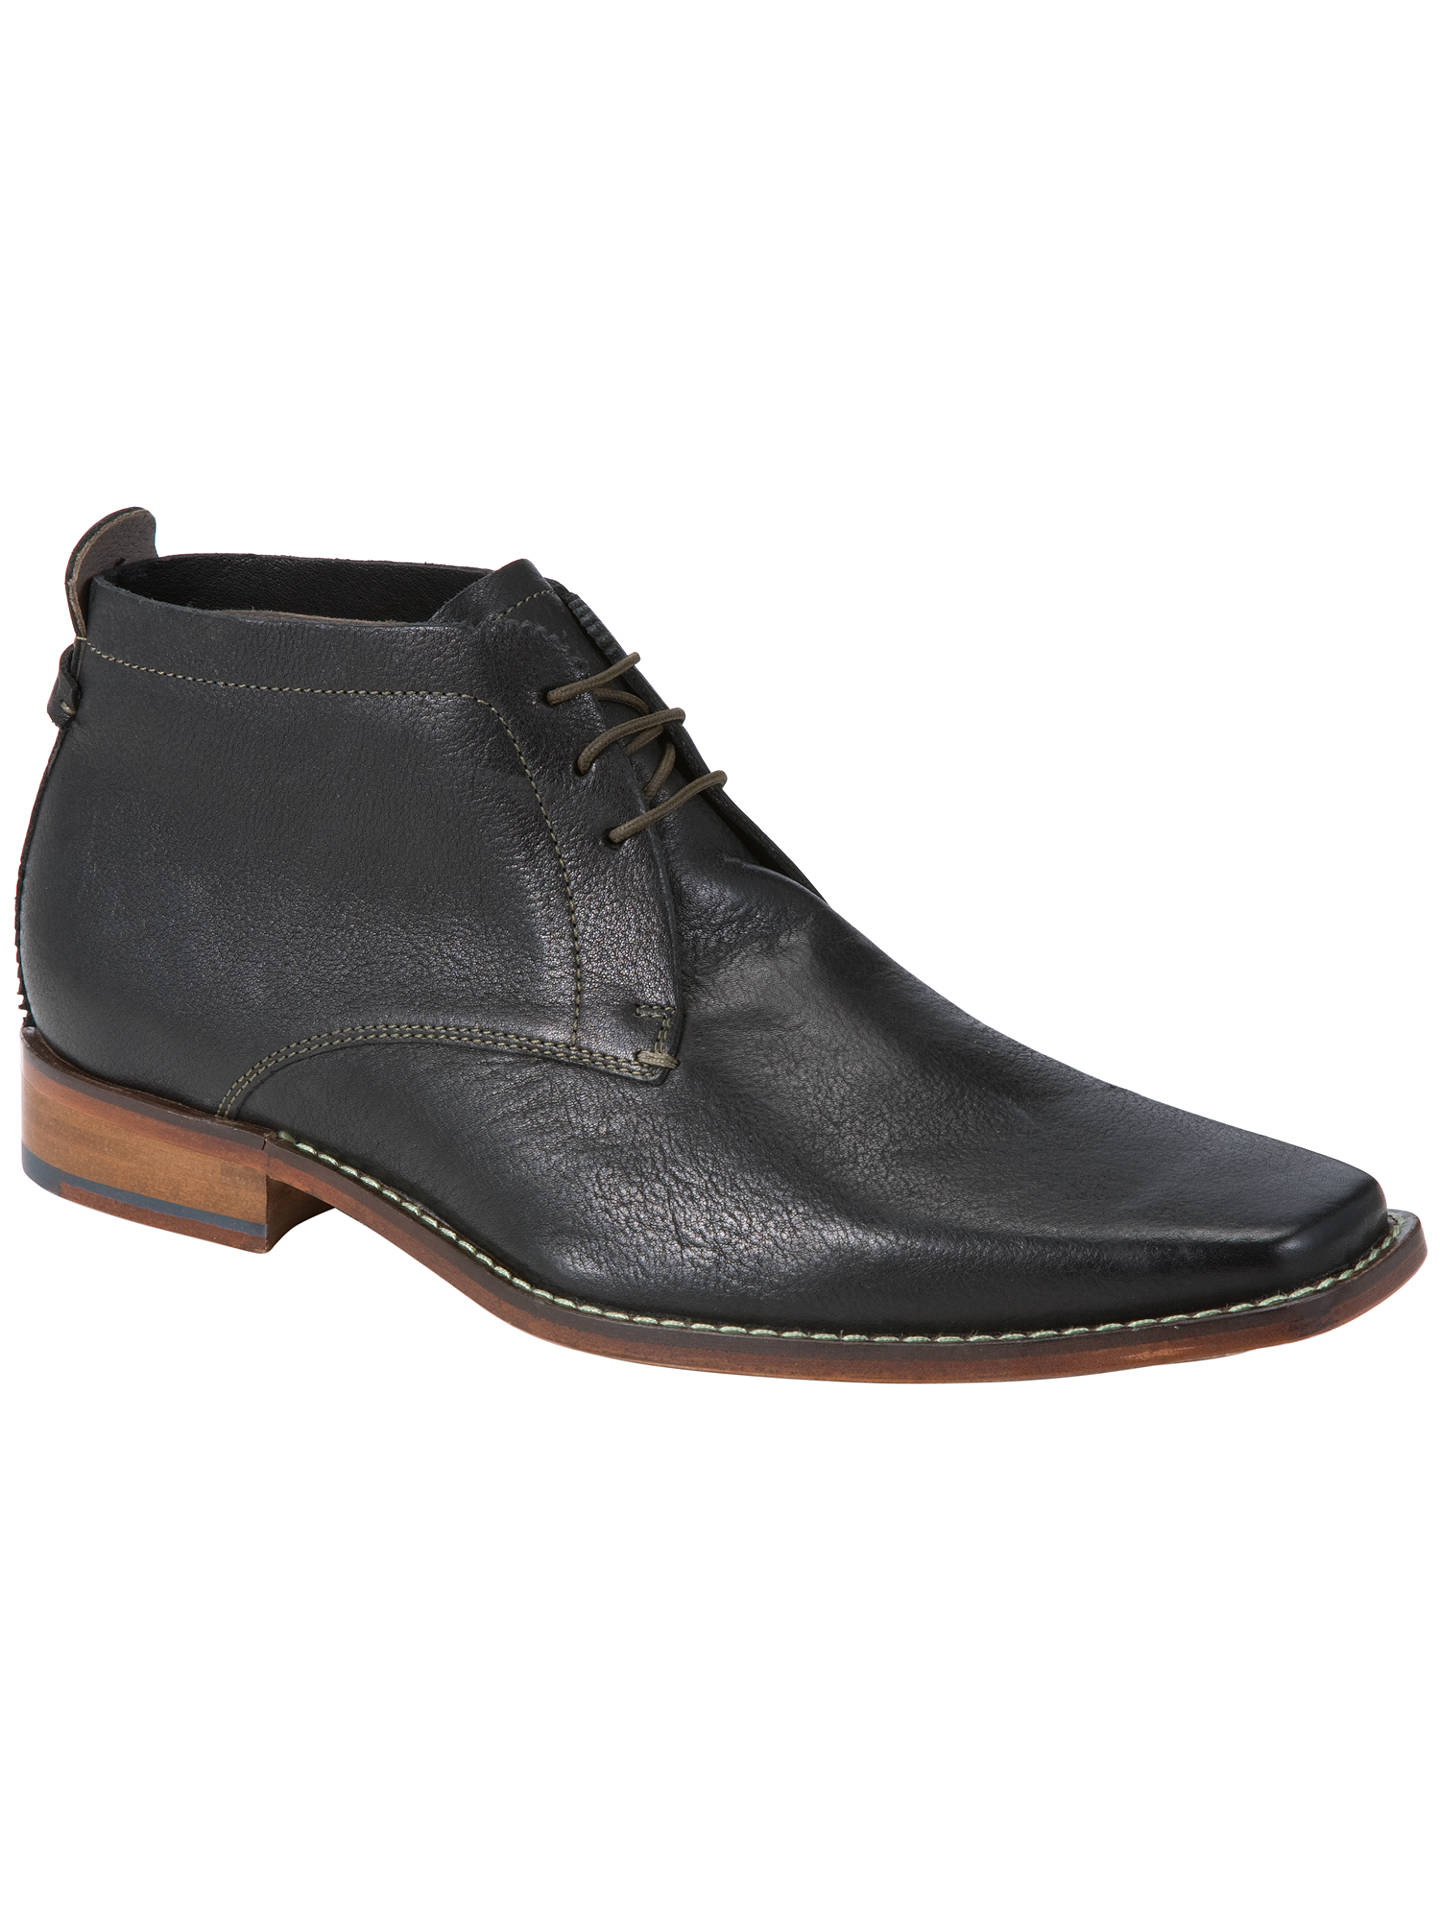 4cc523c9b7f Buy Ted Baker Ashcroft Leather Chukka Boots